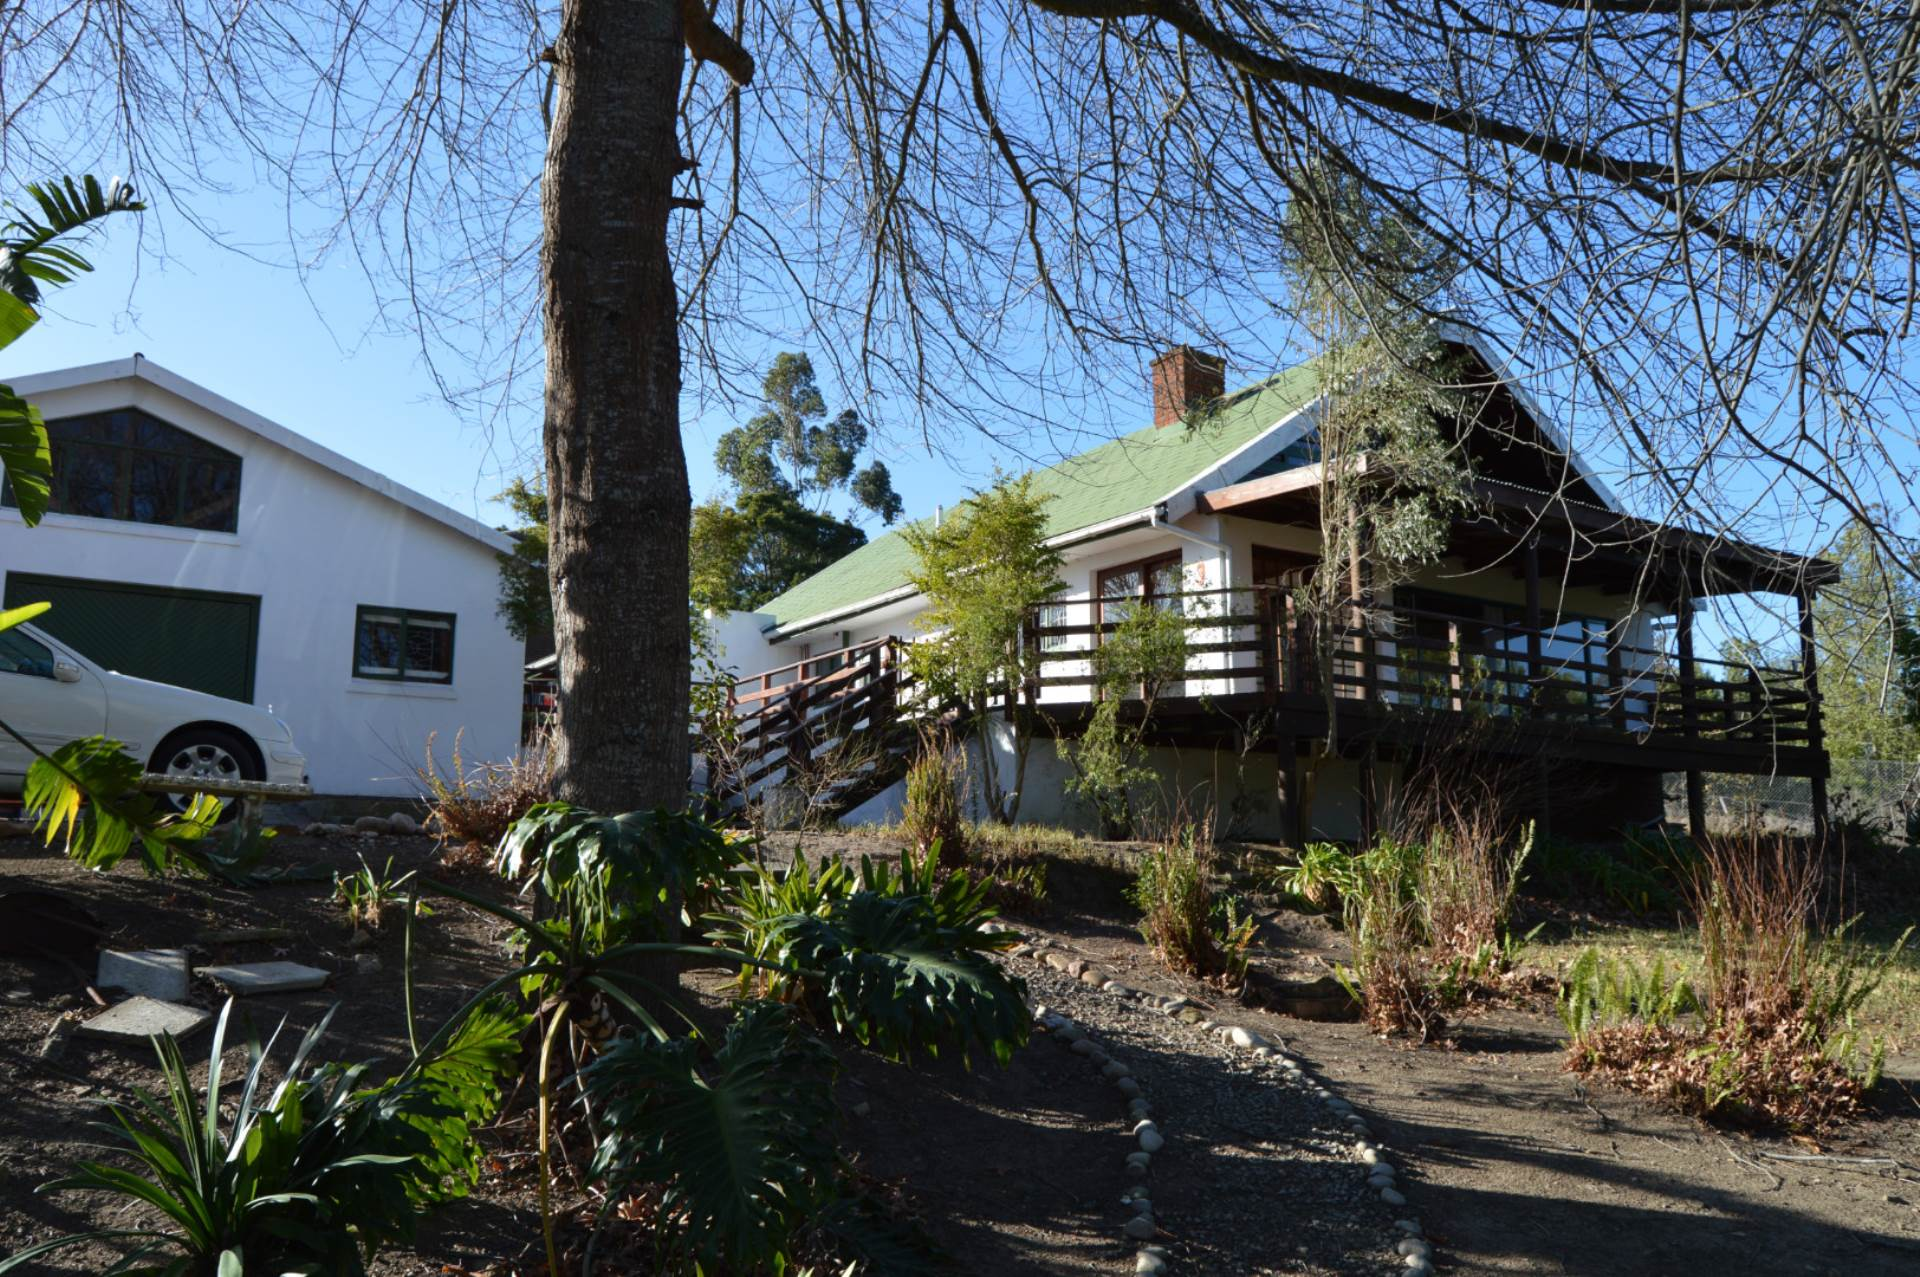 3 BedroomHouse For Sale In Hunters Home